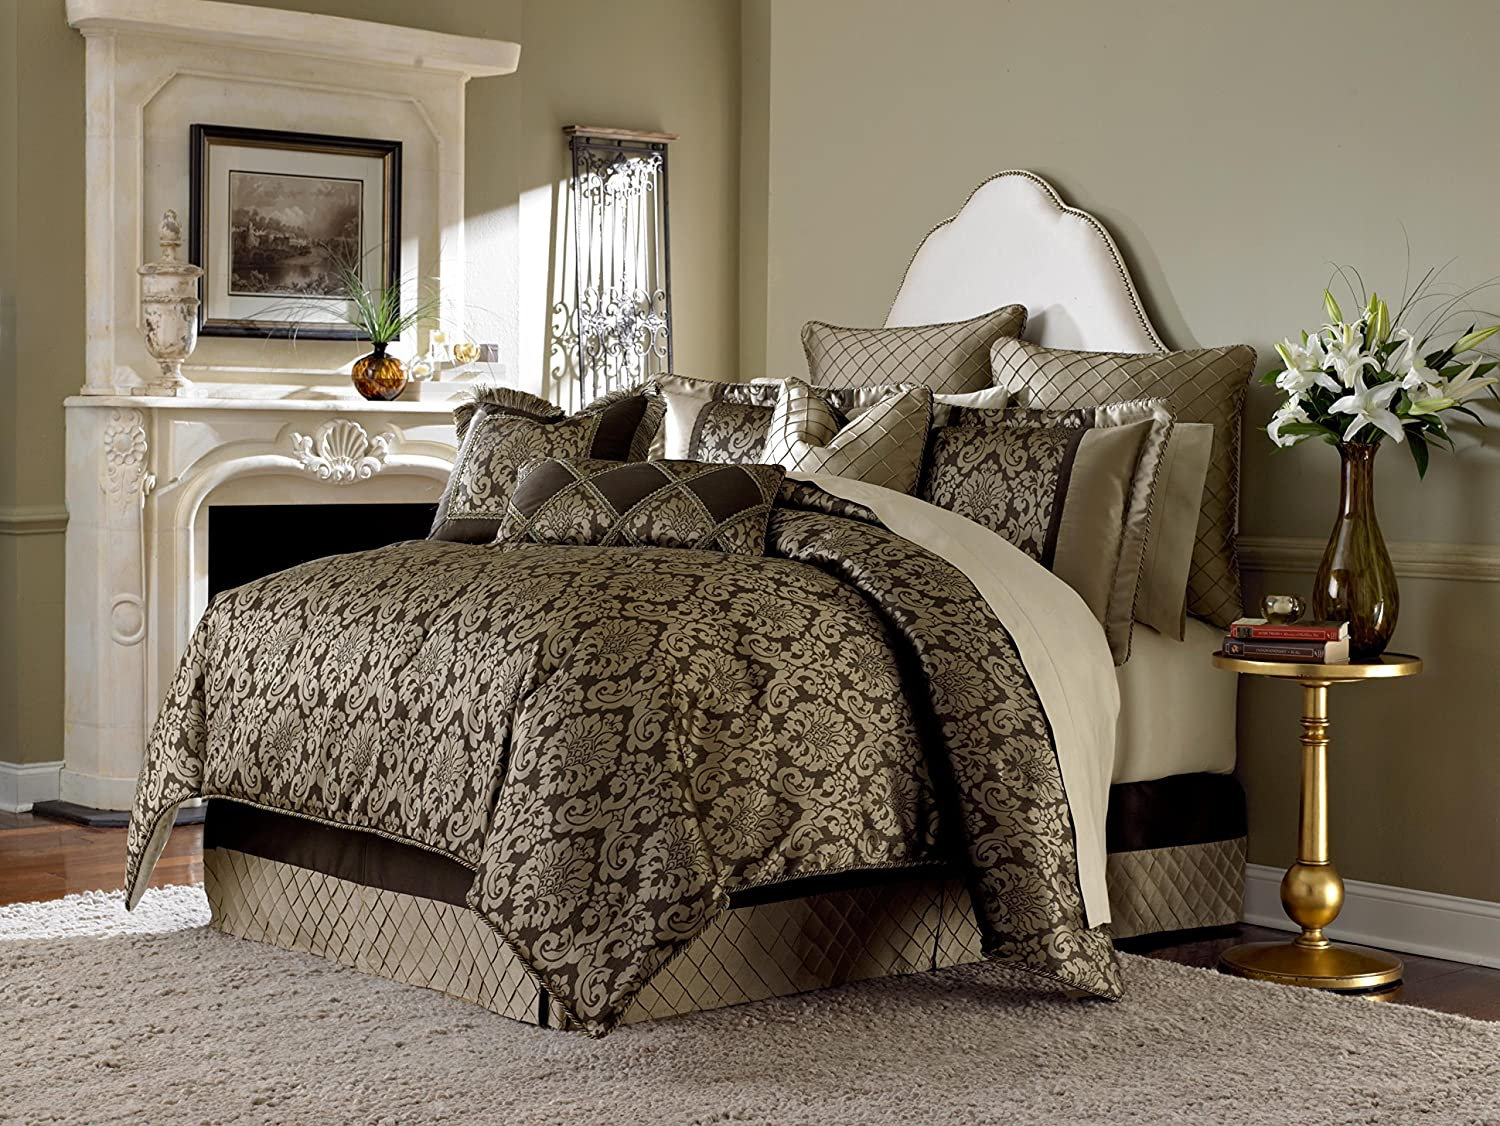 Michael Amini 10 Piece Imperial Comforter Set, King, Gold/Brown